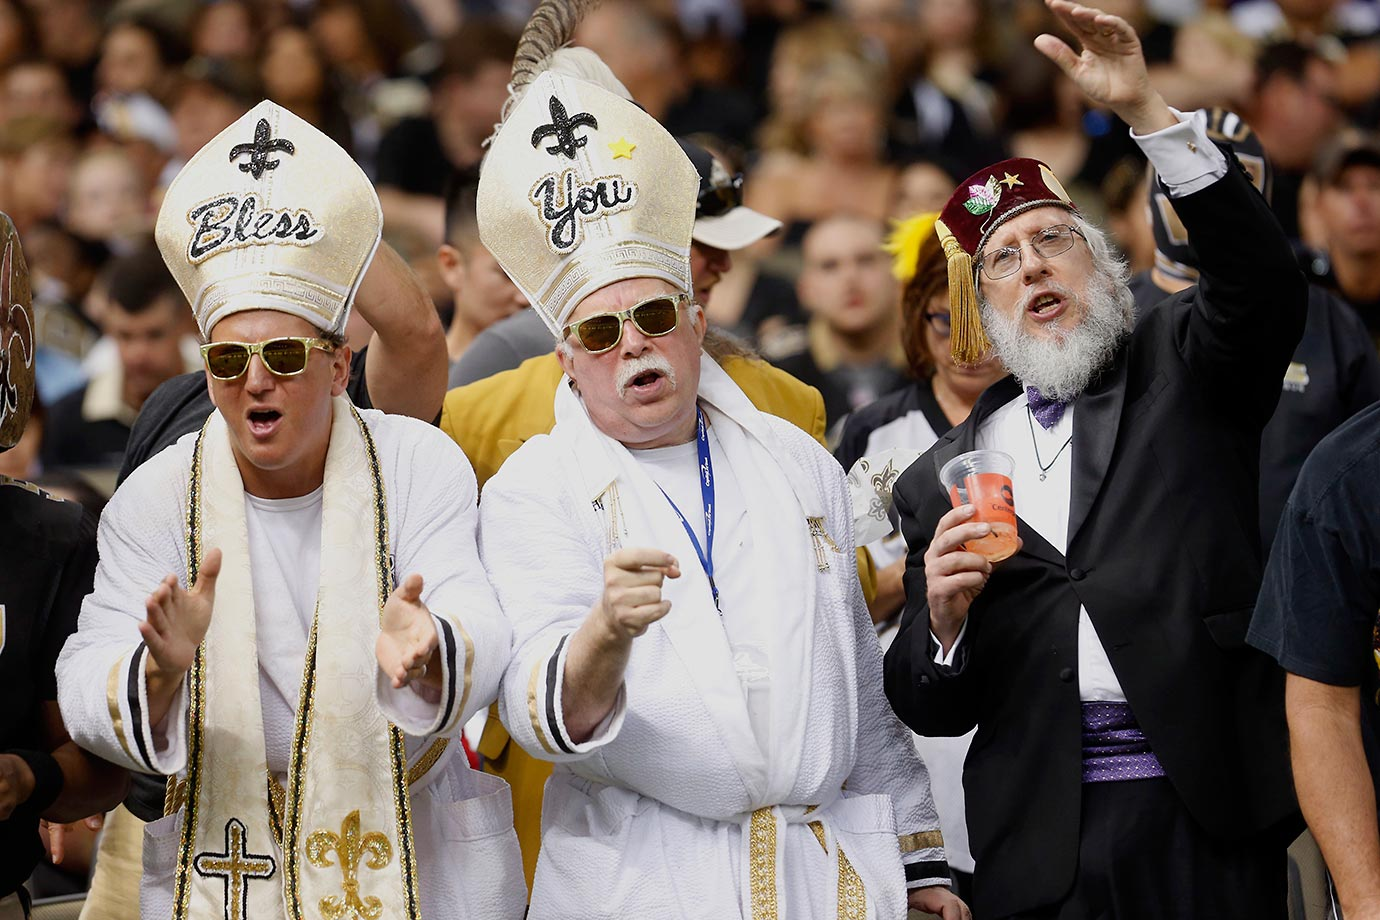 The Pope is getting around the U.S. this week, starting at last Sunday's New Orleans Saints game.